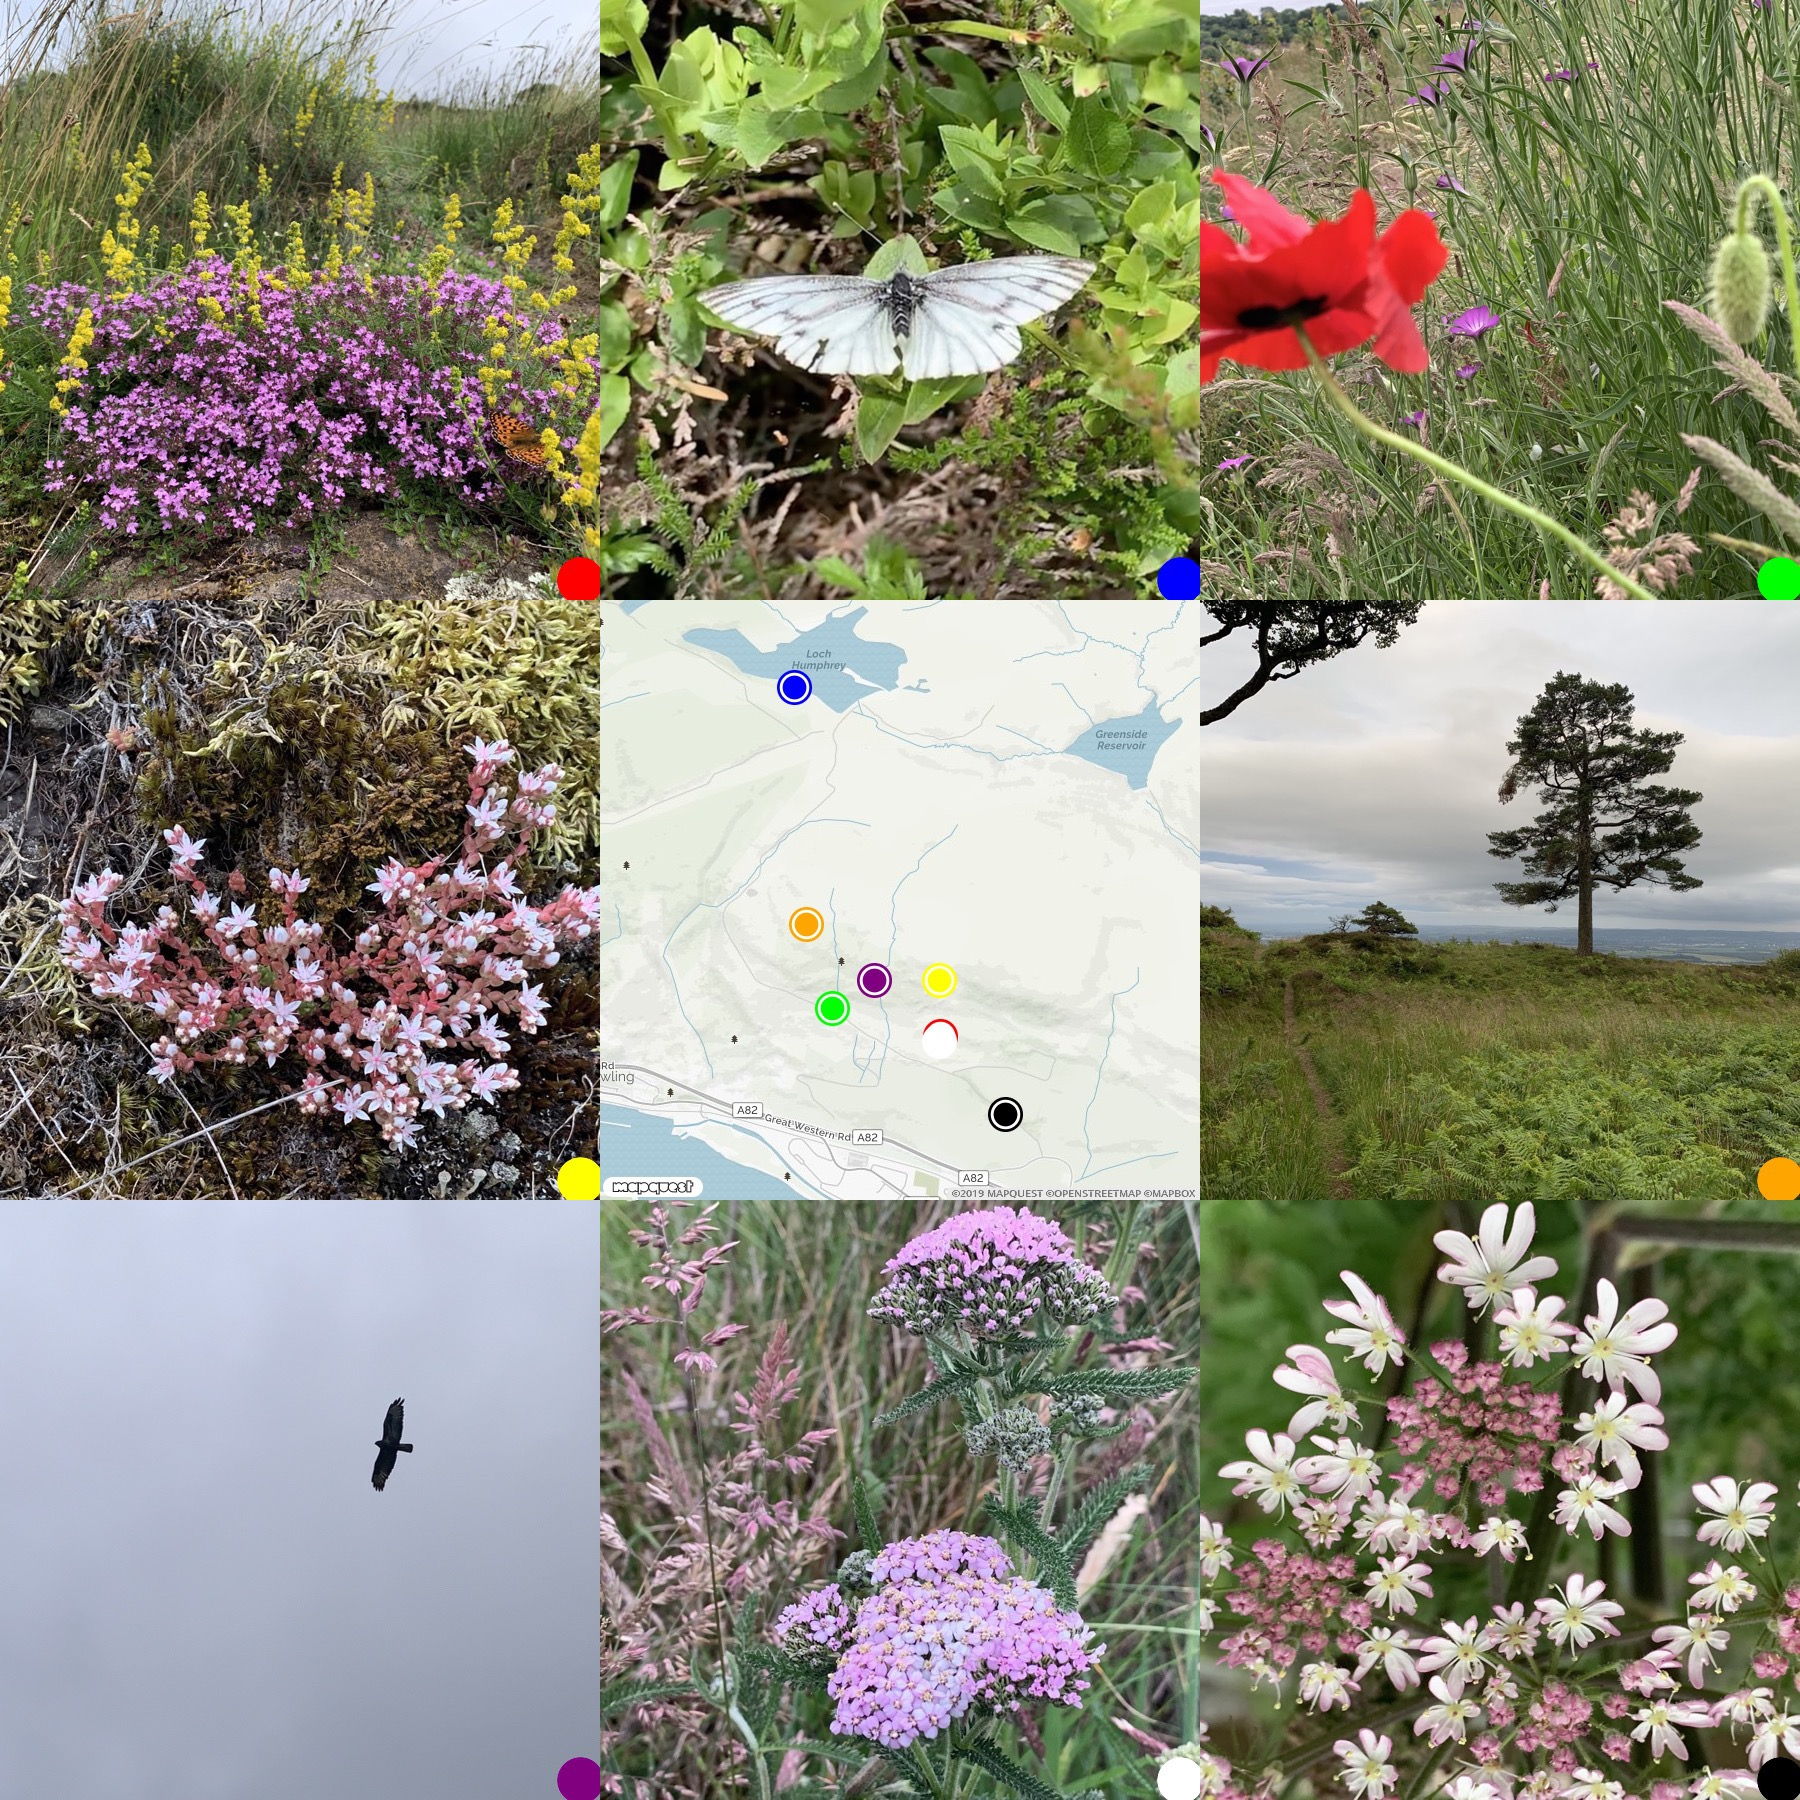 montage of 8 images surrounding a map, pictures of flowers and butterfiles, kilpatrick hills, scotland